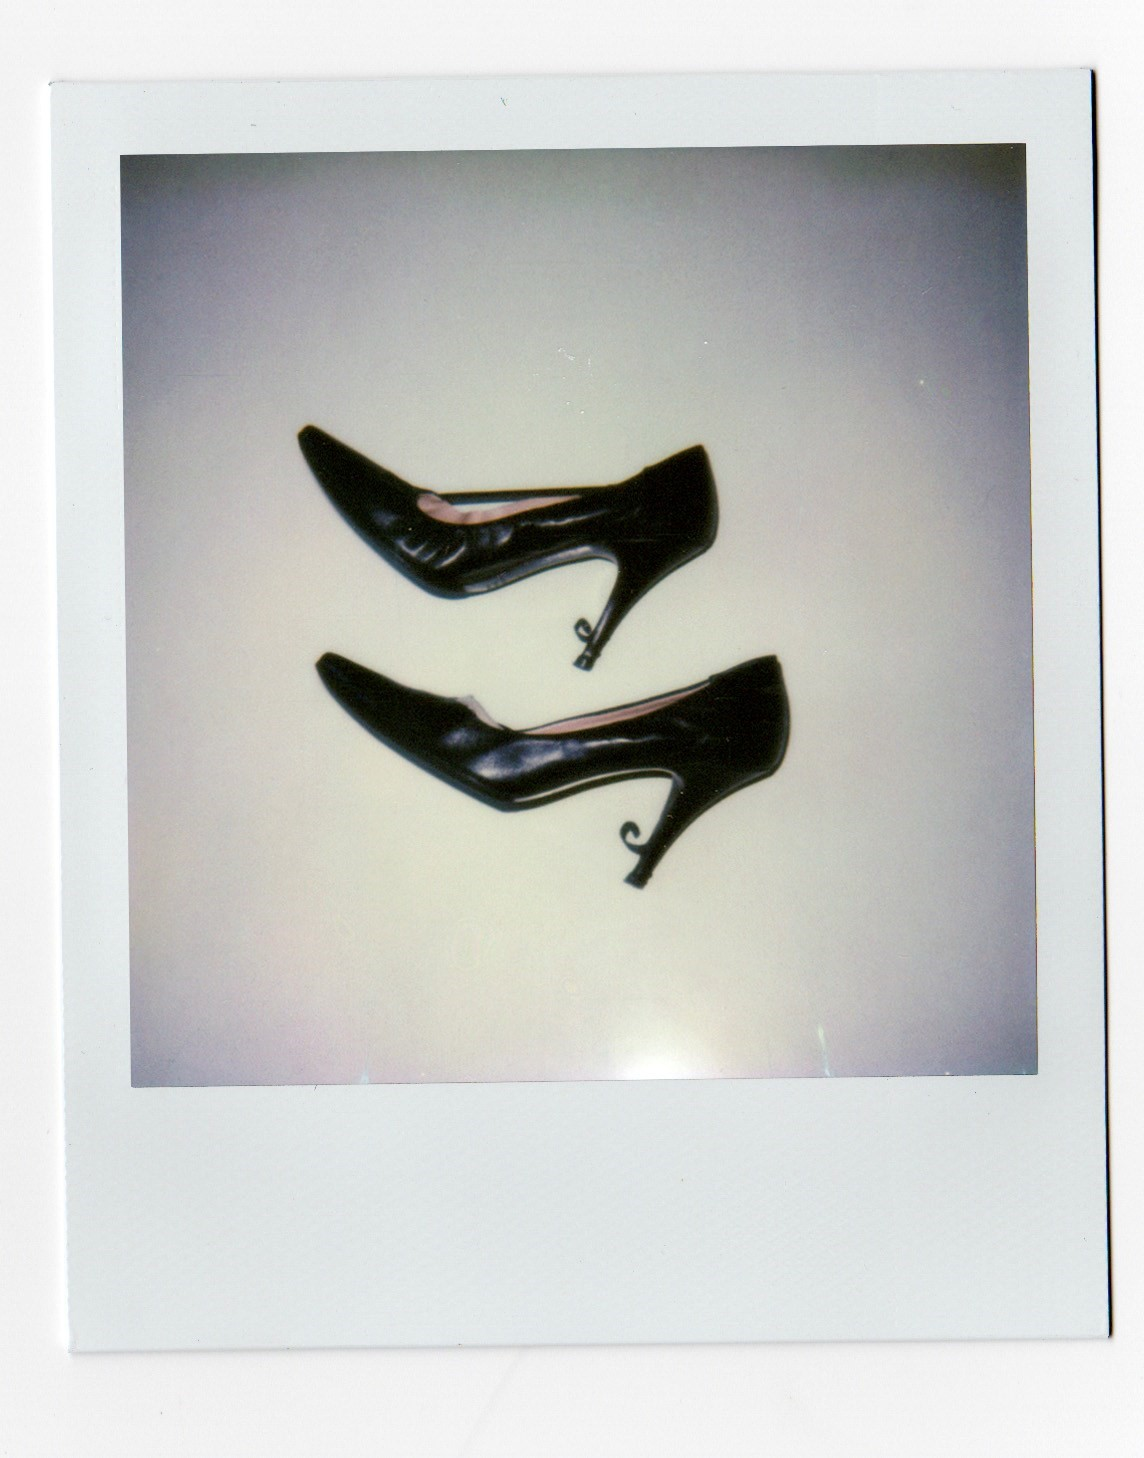 Black after party pumps, 2005